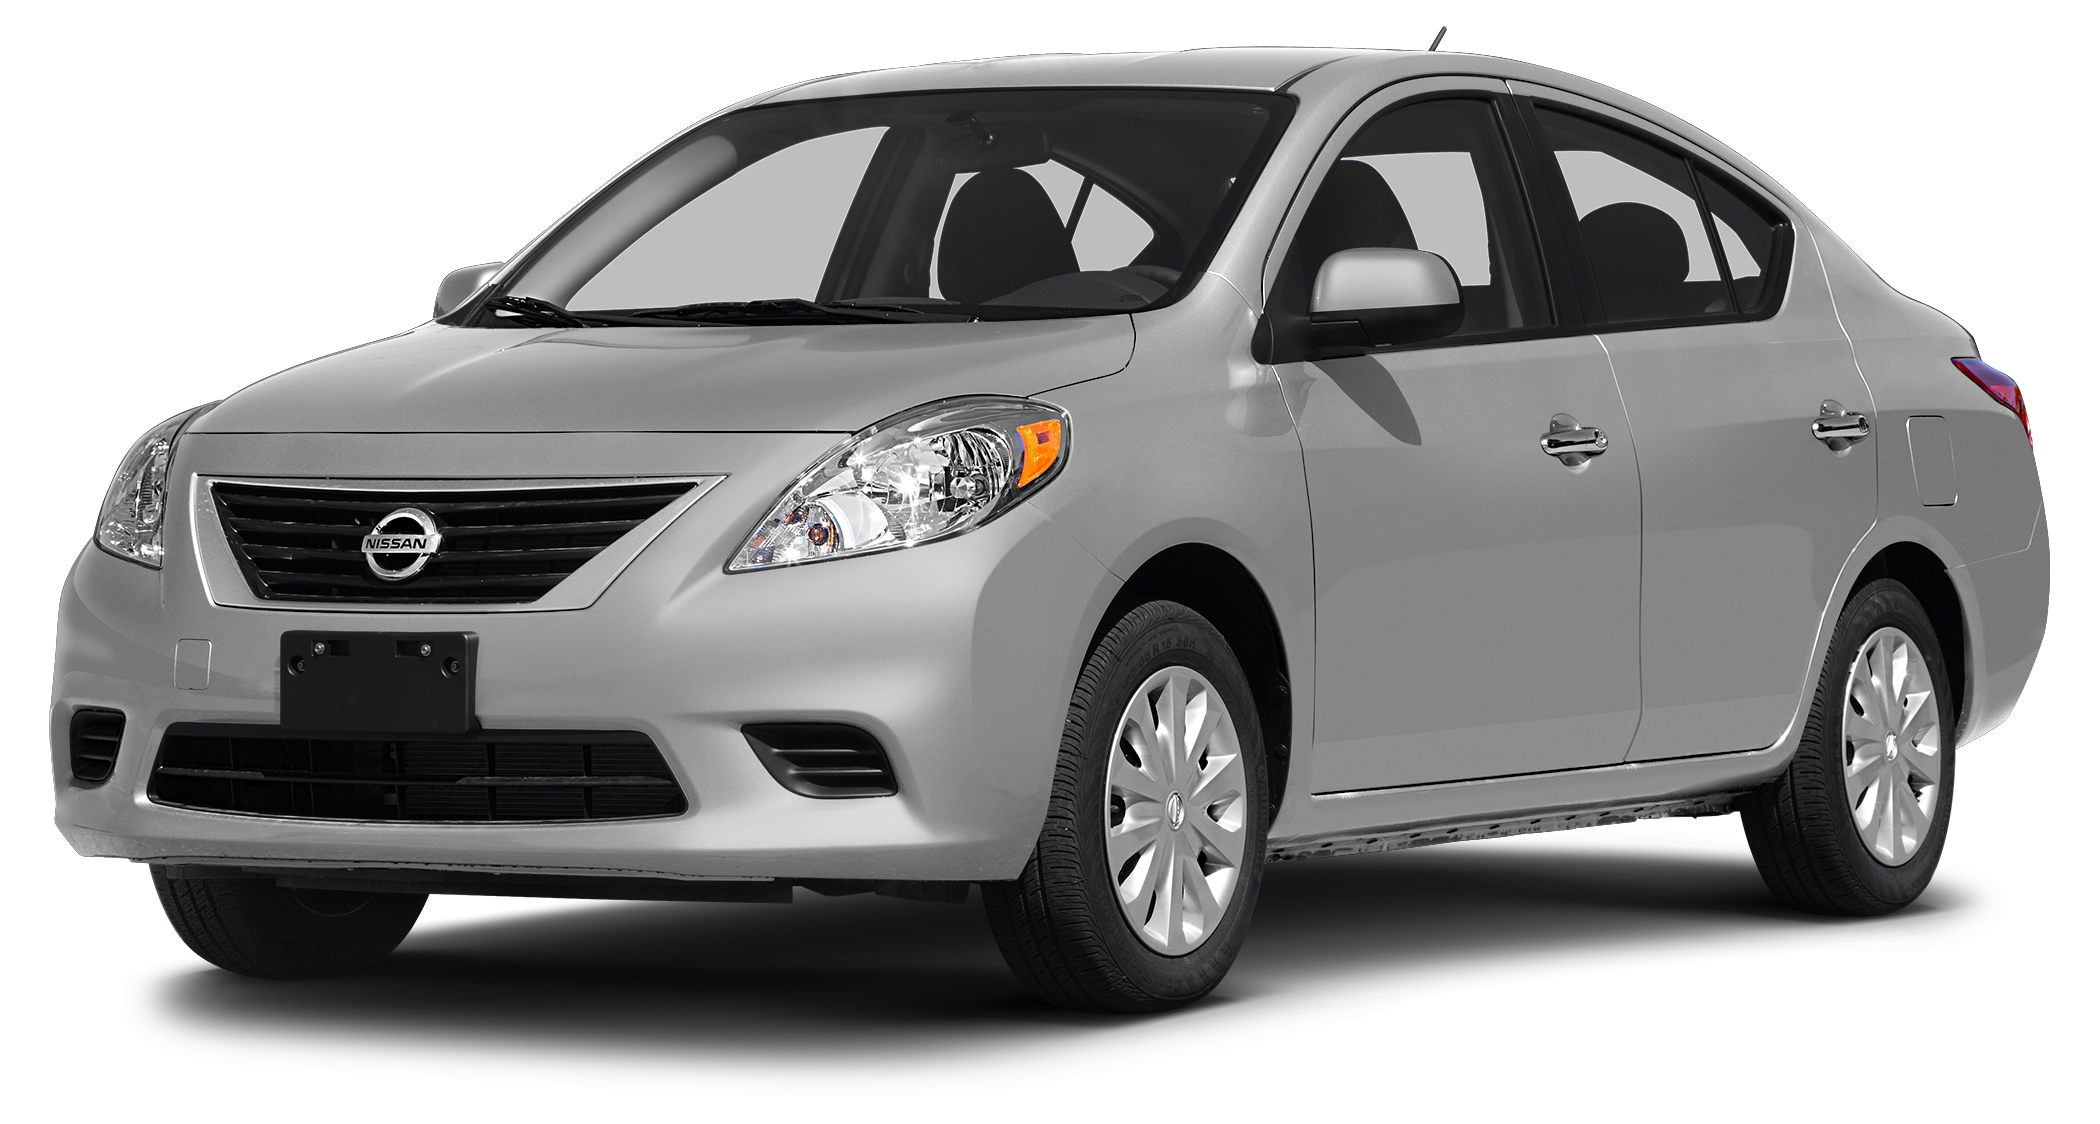 2014 Nissan Versa 16 SV Nissan Village is here to serve you Why dont you become the owner of a